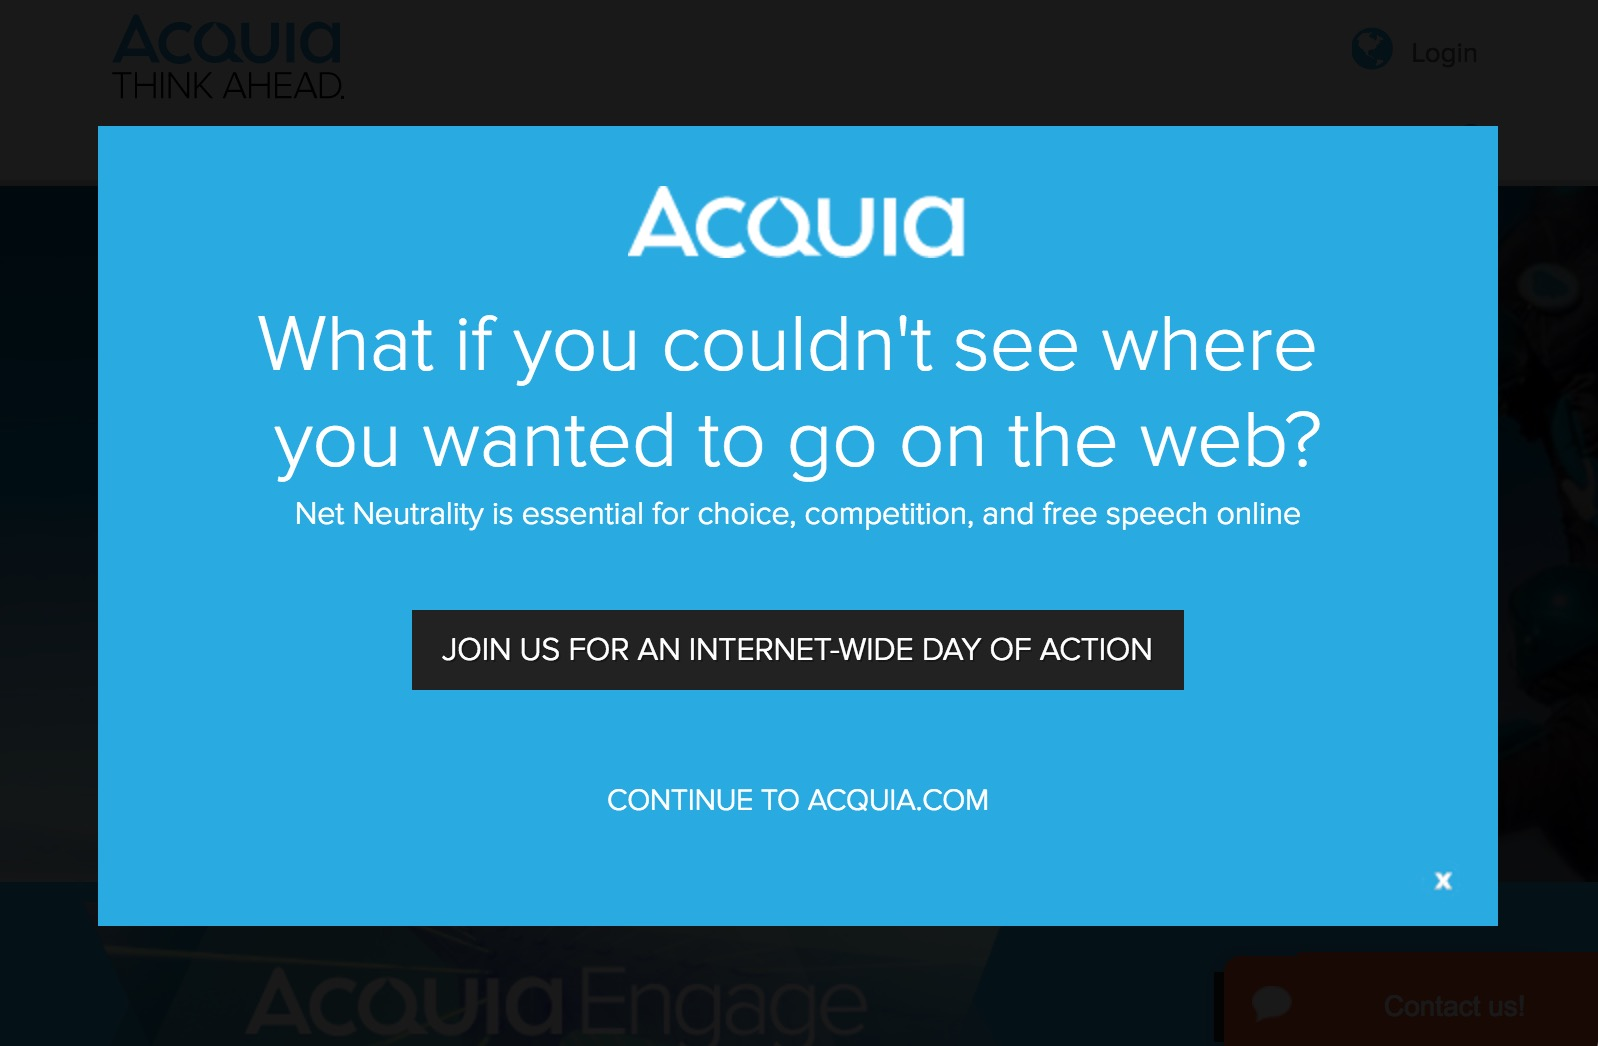 Acquia supports net neutrality